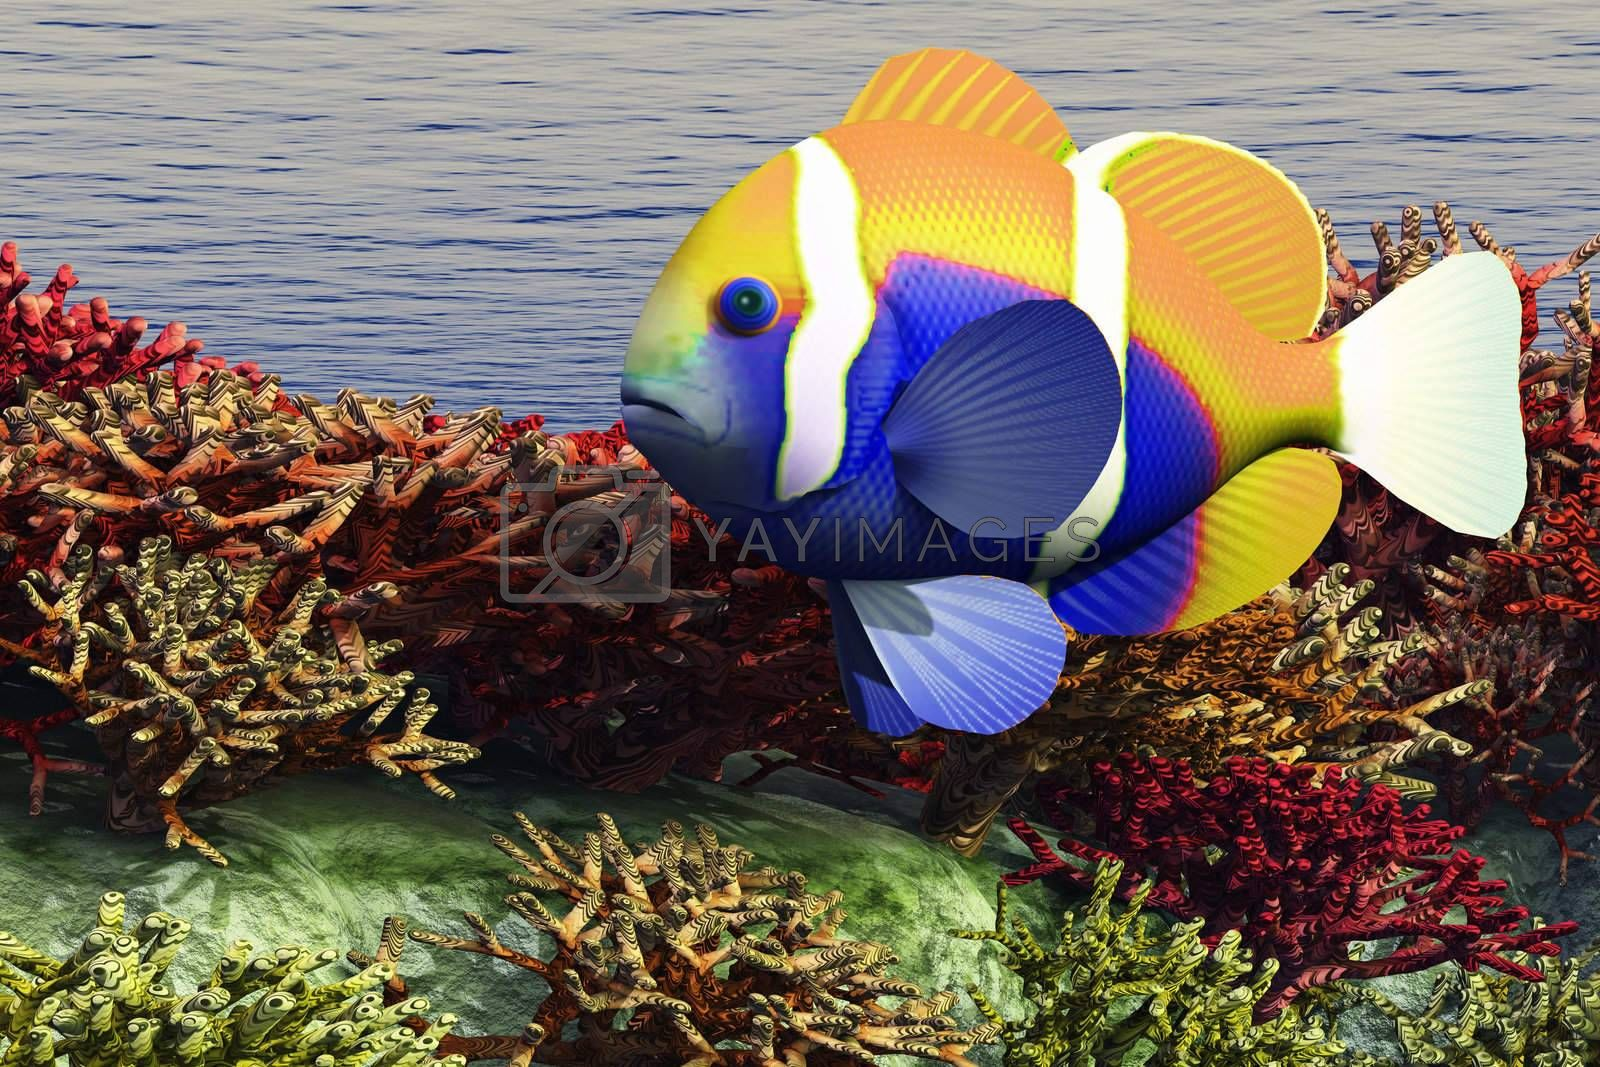 A colorful clown-fish swims among the corals of an ocean reef.